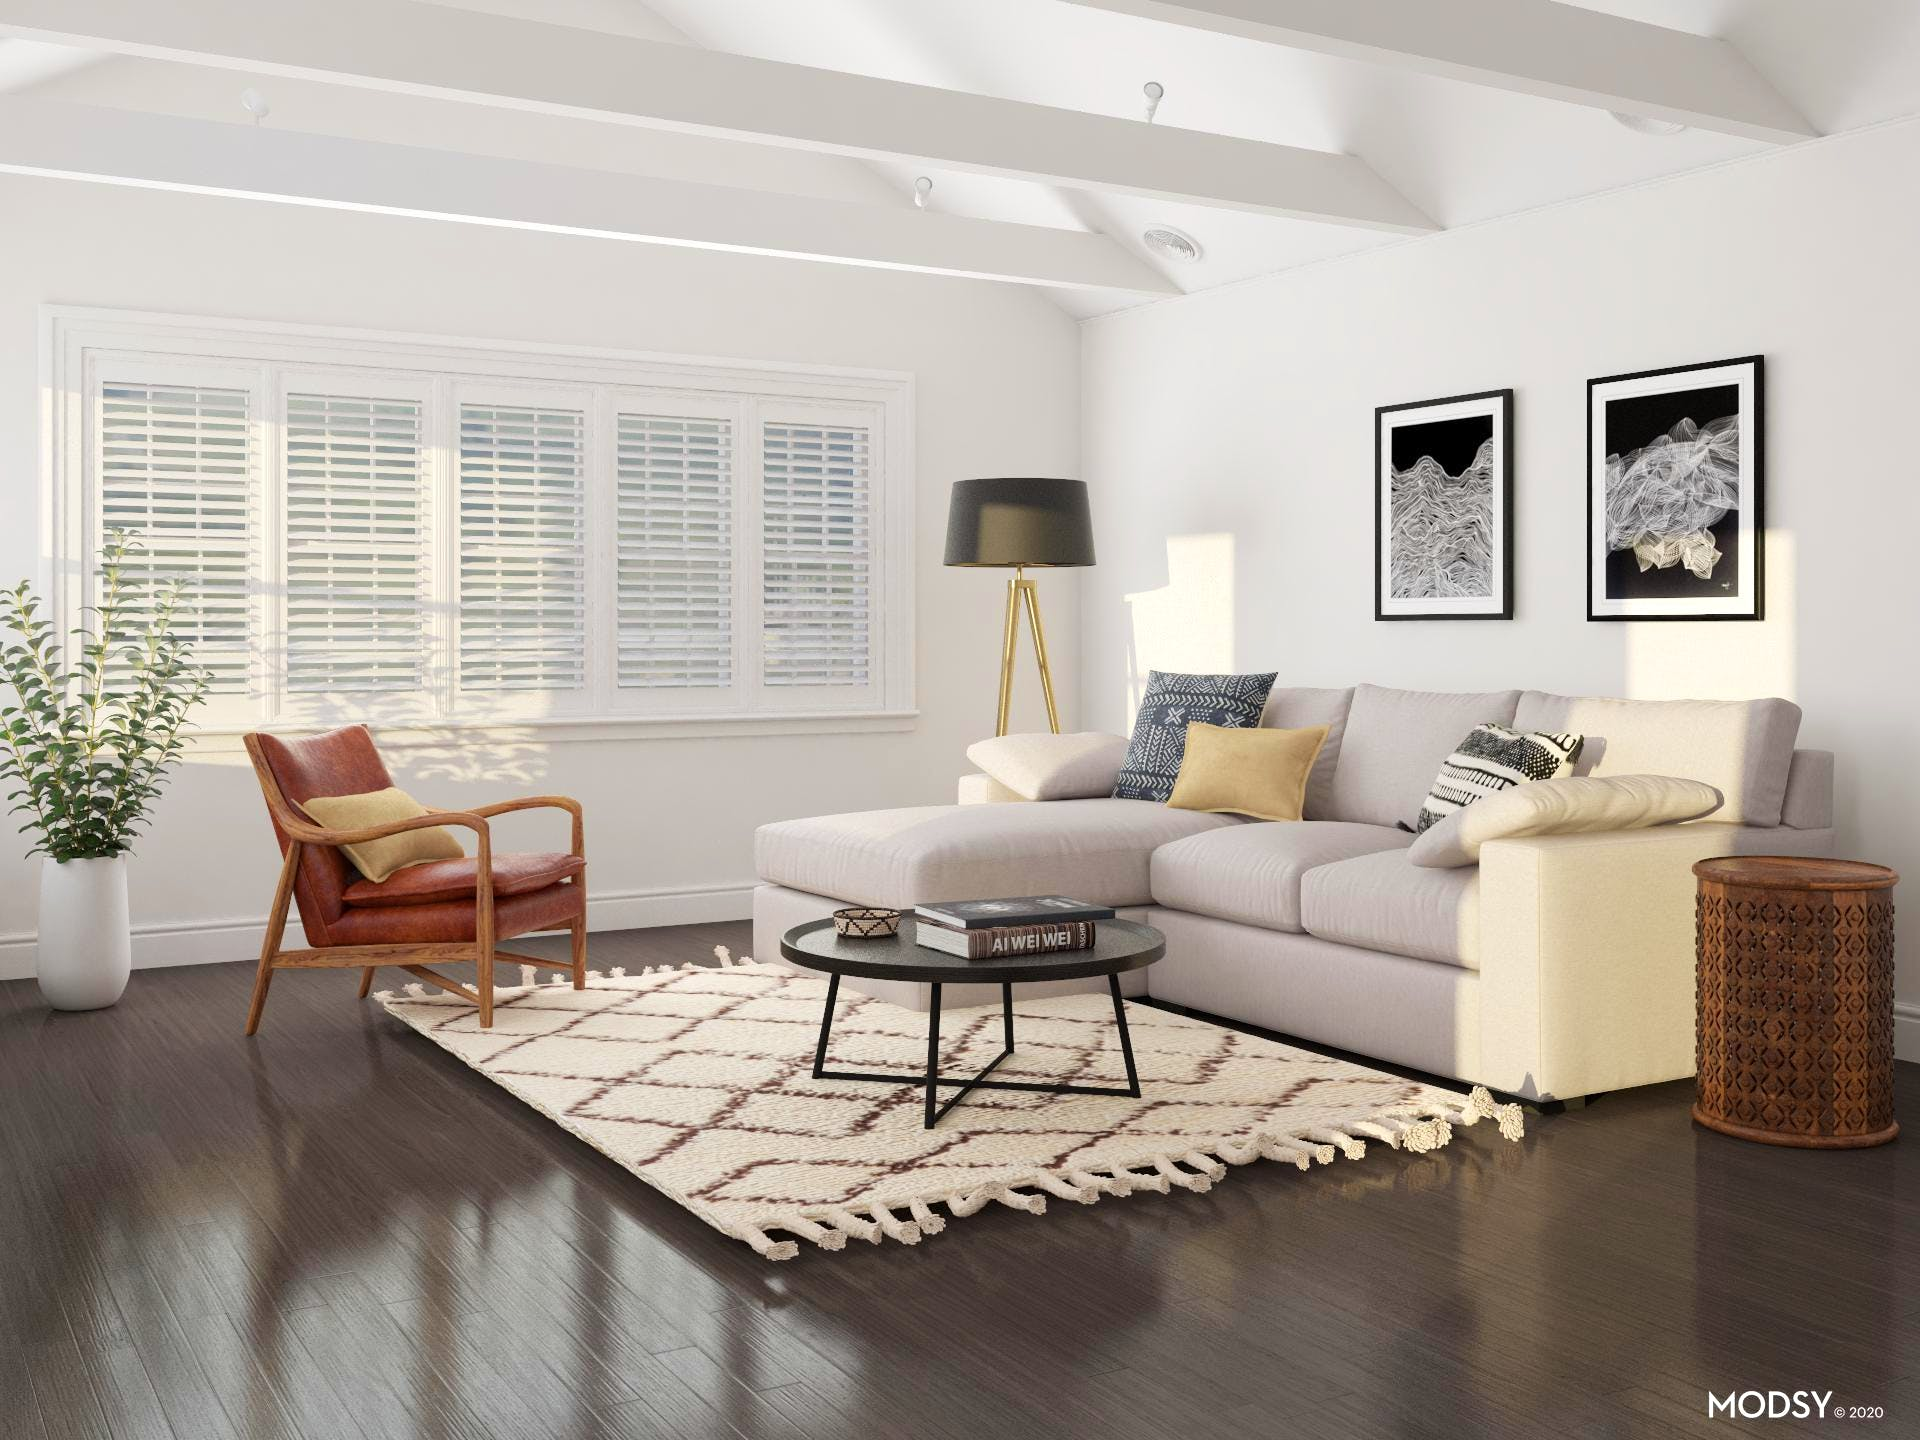 Mid-Size Woven Rug Adds Extra Comfort to Cozy Contemporary Living Room